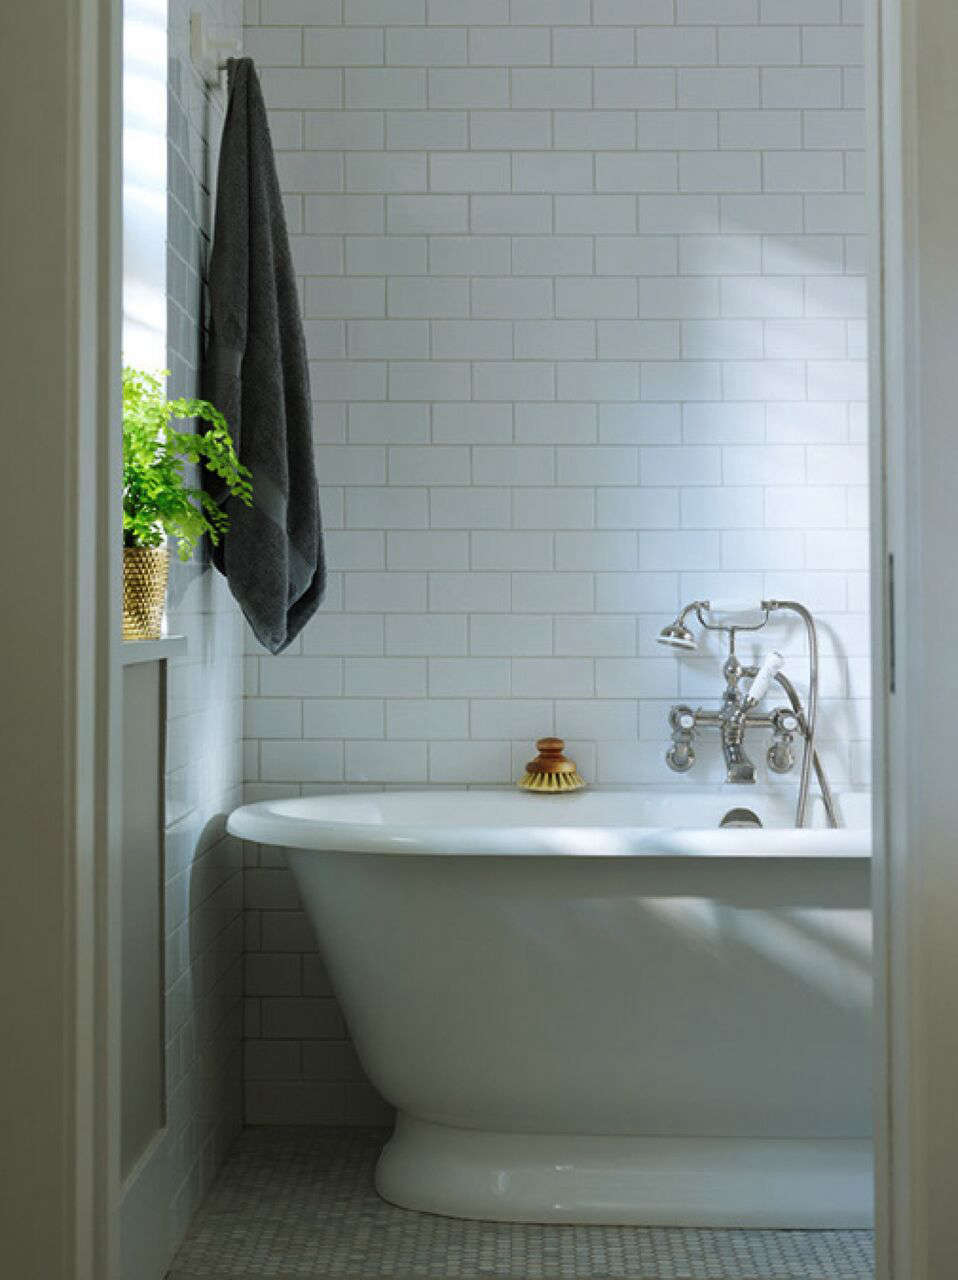 A Notting Hill Townhouse Tailored for Living by Charles Mellersh Victorian style freestanding porcelain bathtub and subway tile in a remodeled historic Notting Hill townhouse, interior design by Charles Mellersh   Remodelista